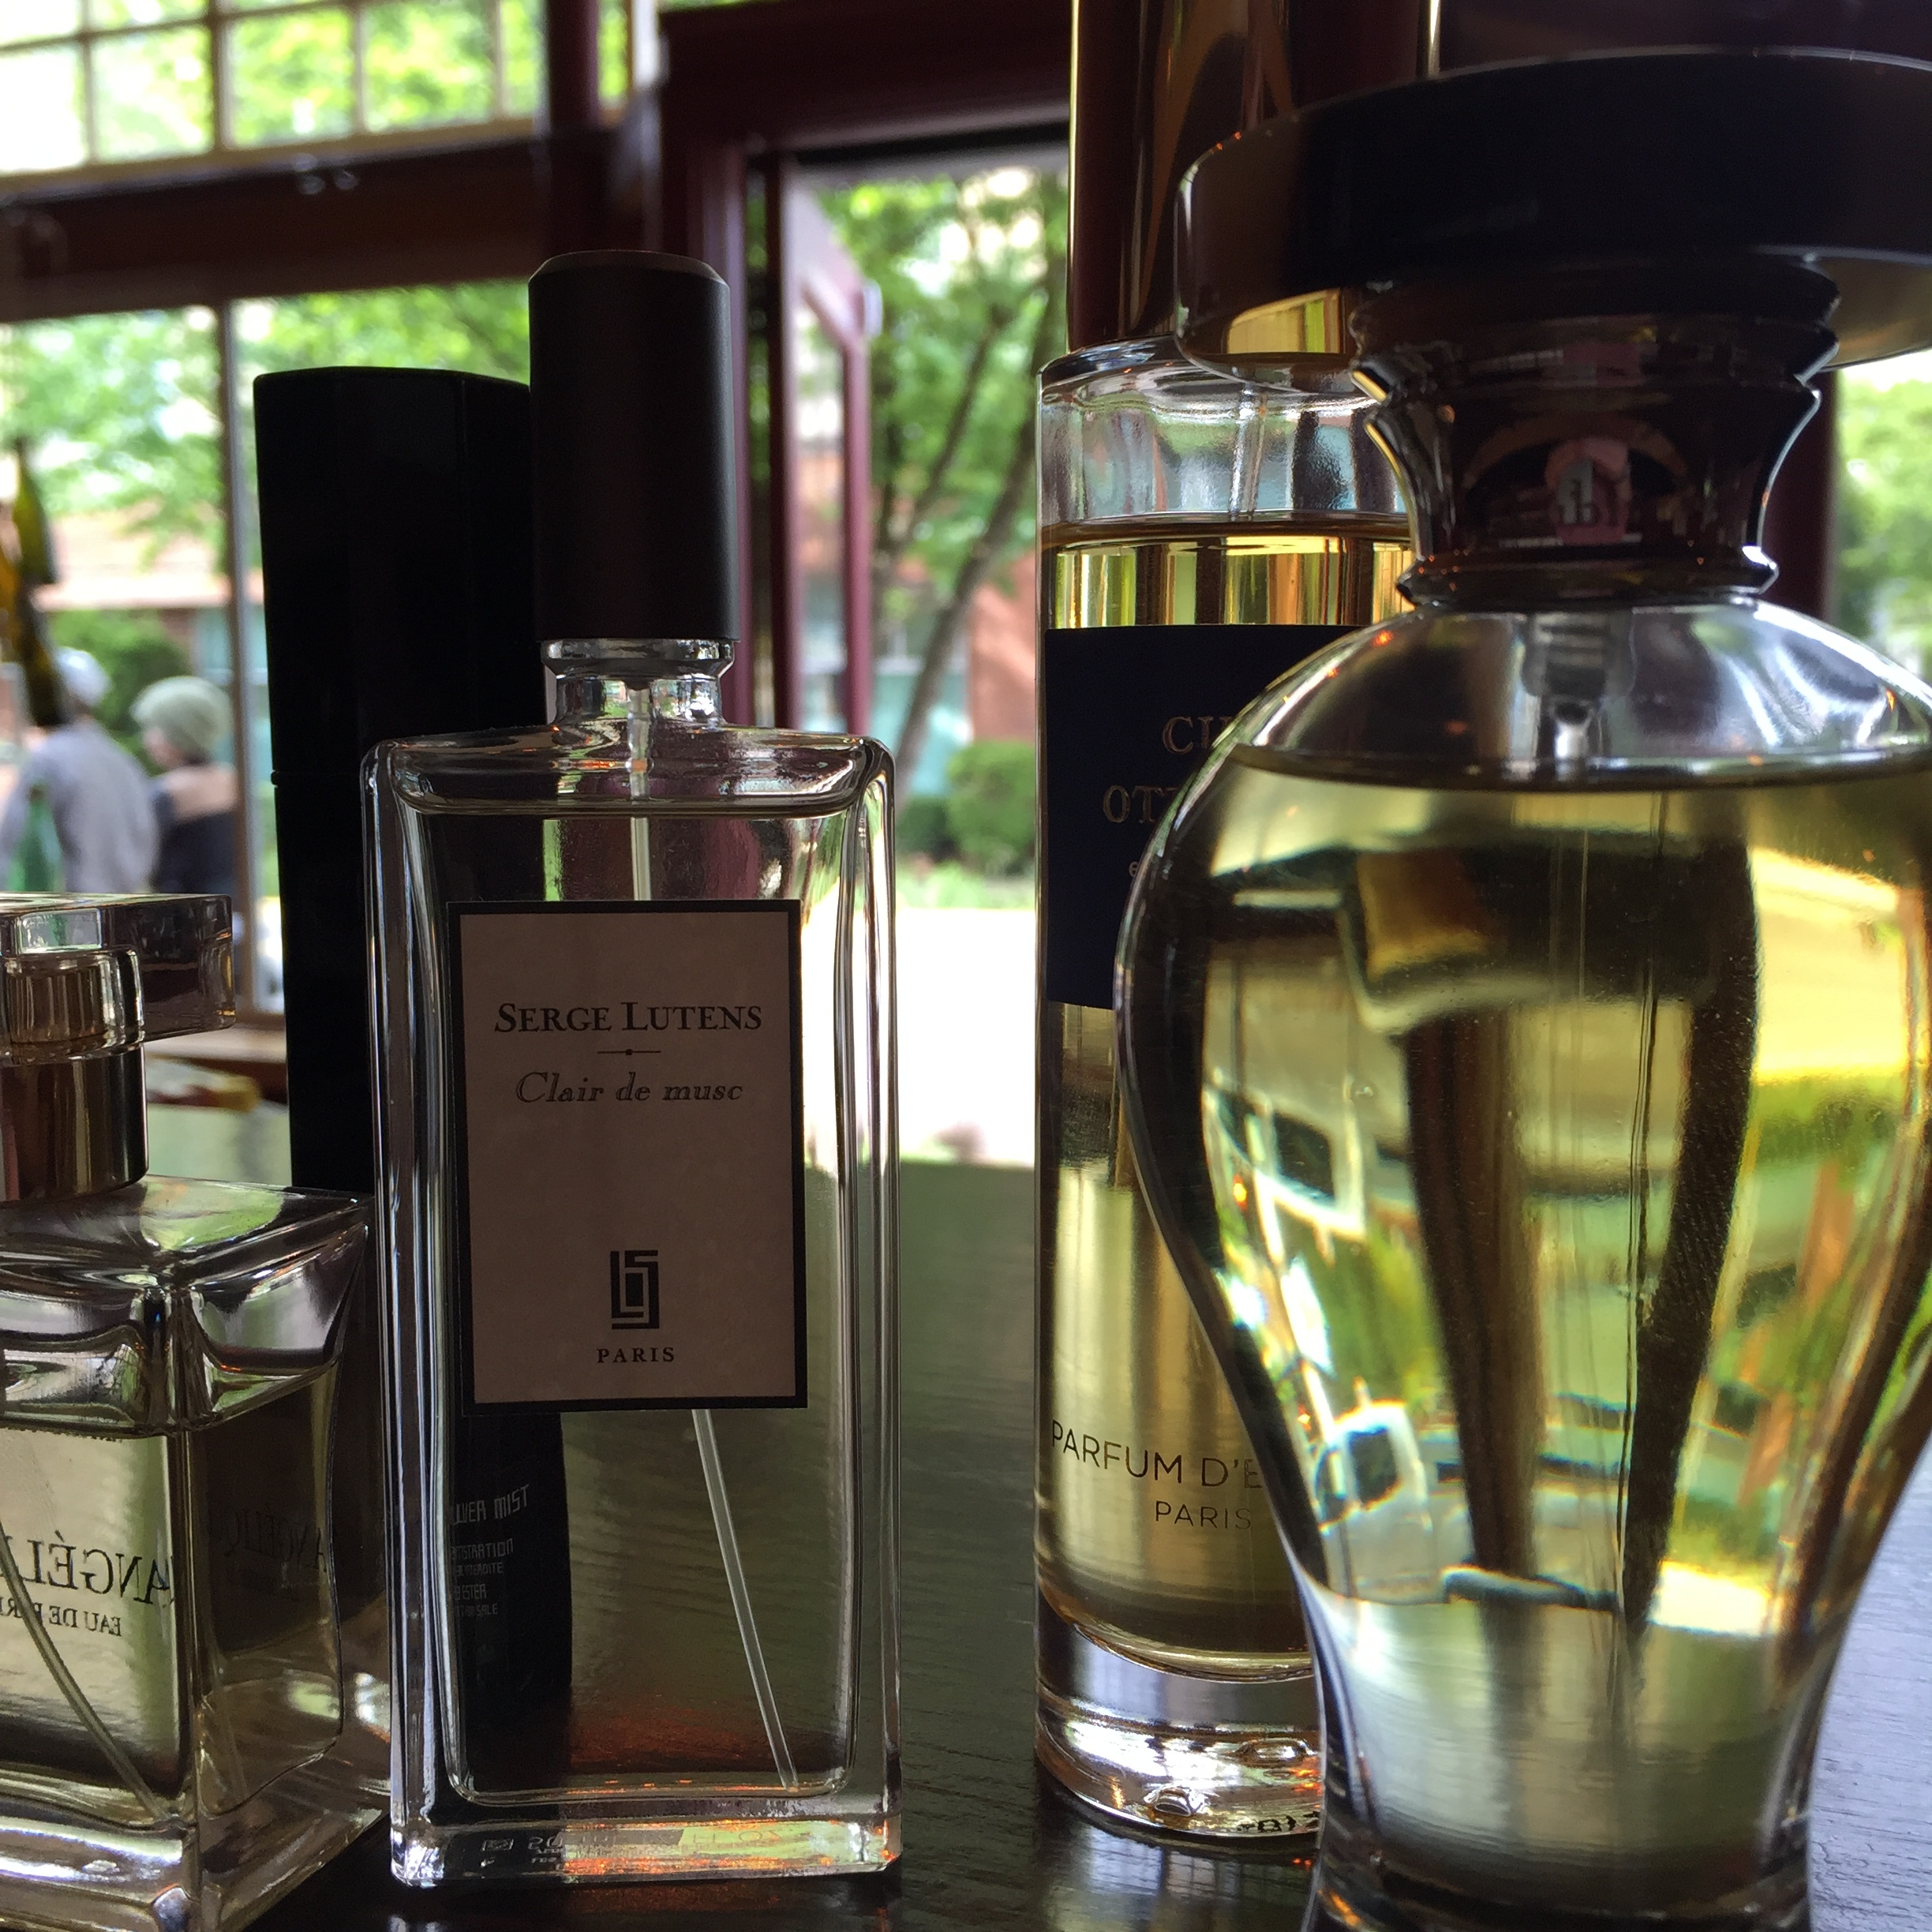 A handful of the fragrances mentioned in this post on the counter at our boutique on SE Division Street in Portland.